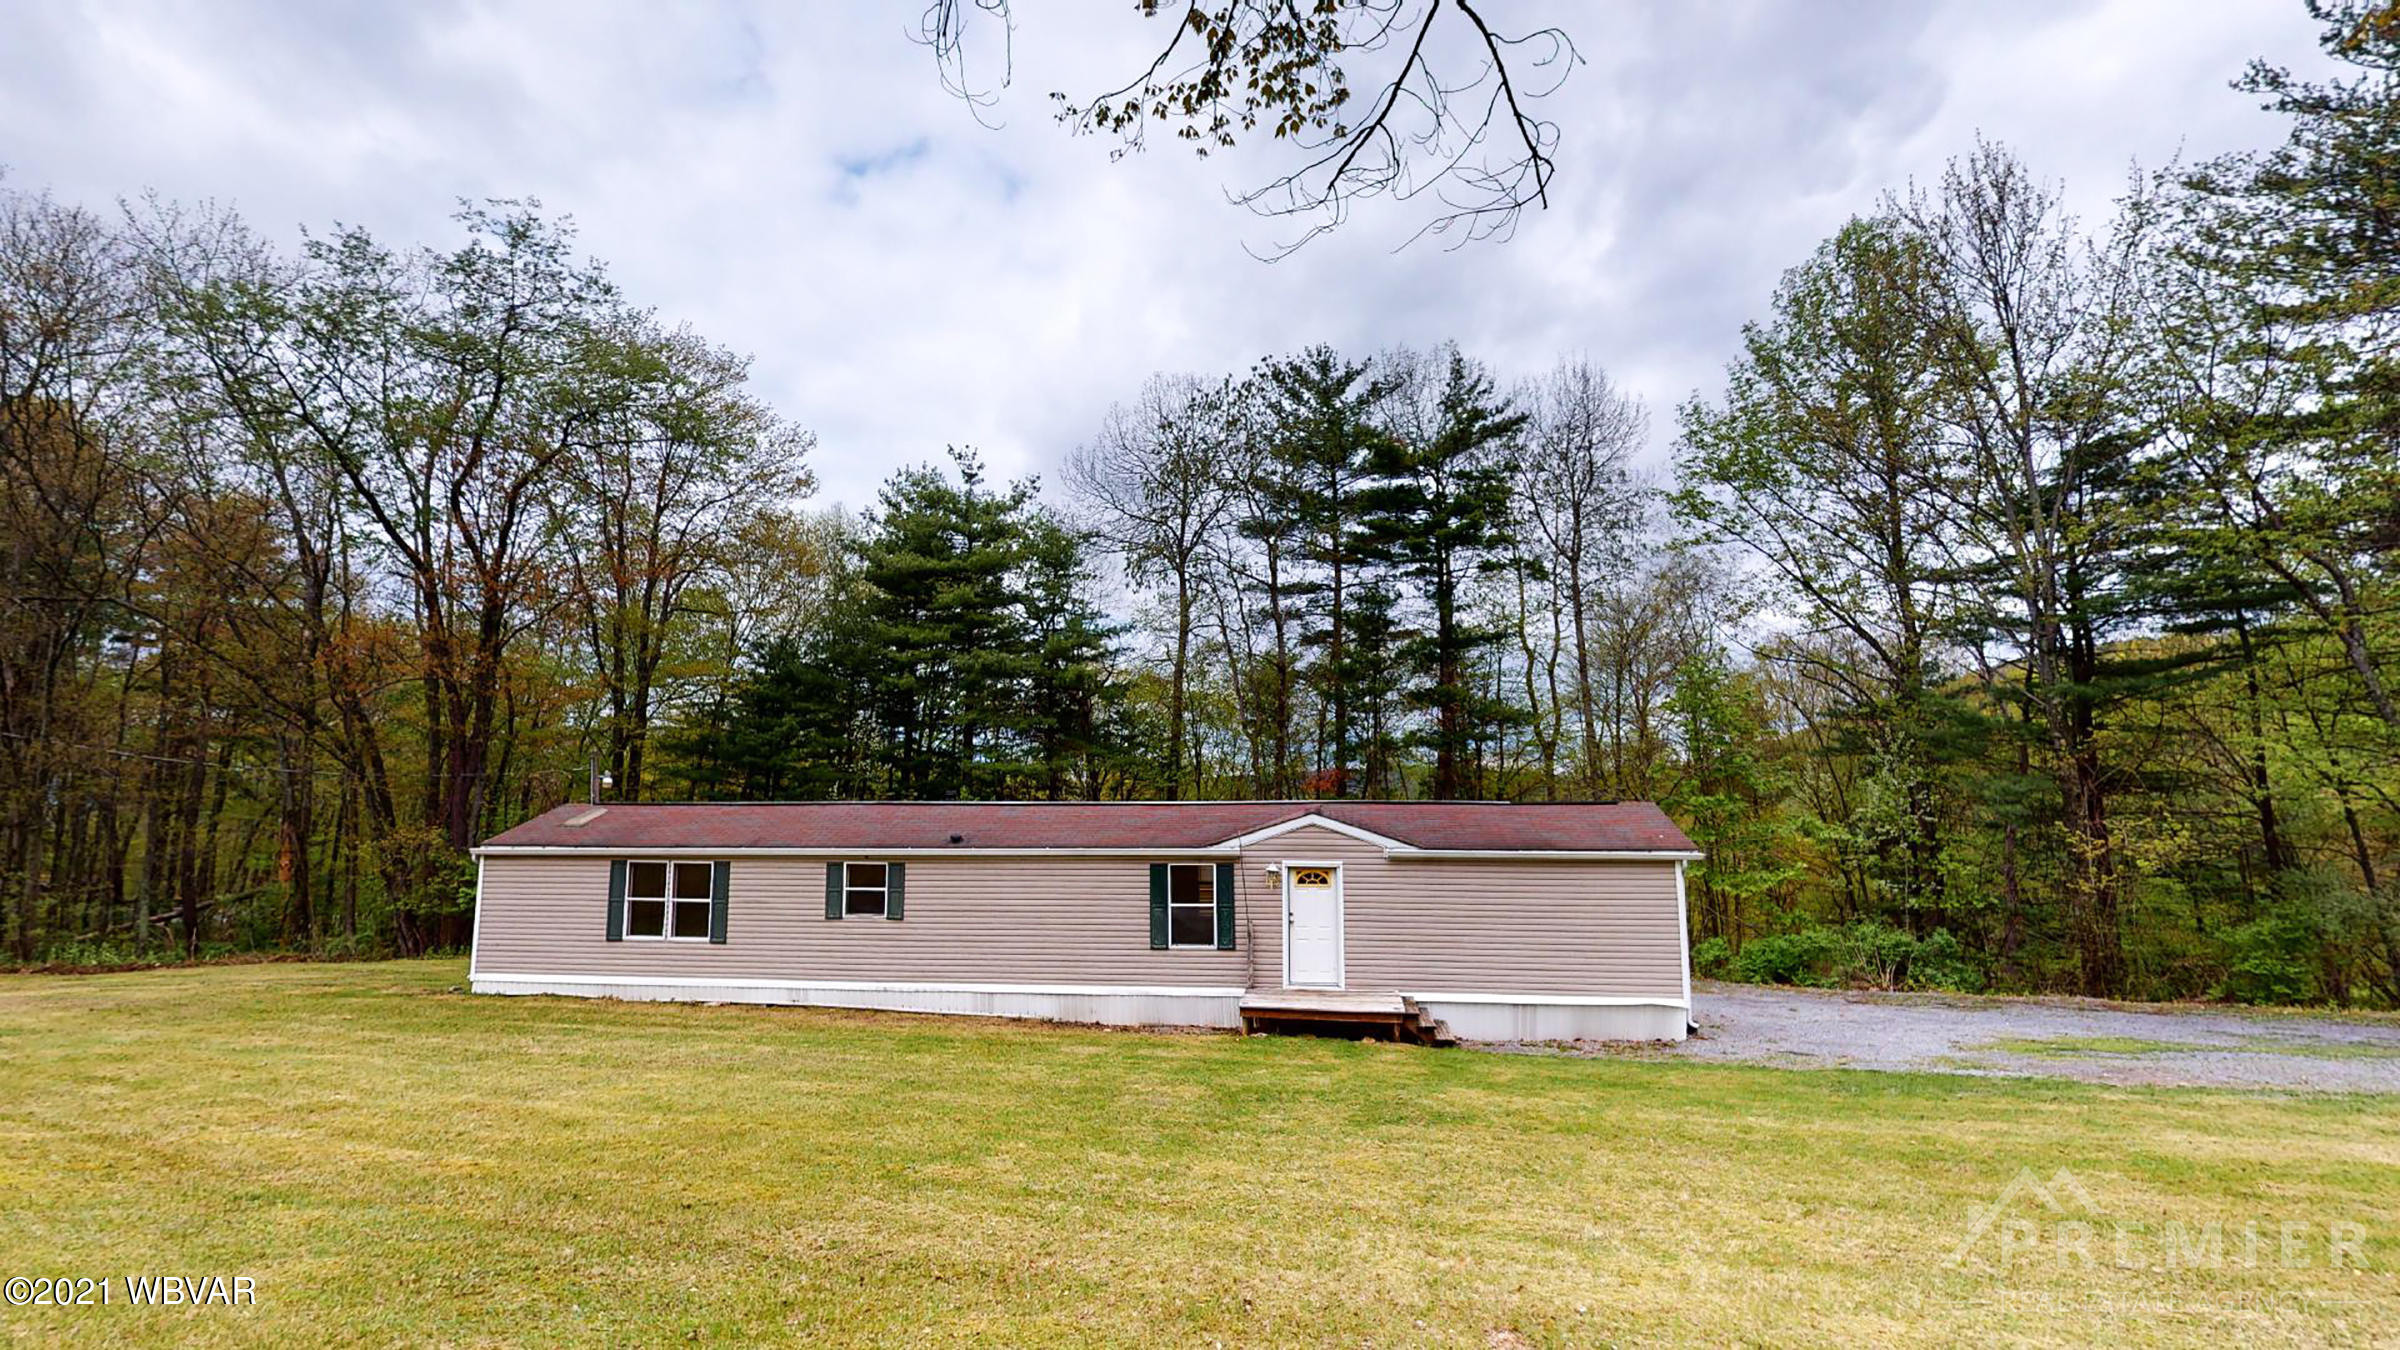 2080 STOPPER ROAD, Williamsport, PA 17702, 2 Bedrooms Bedrooms, ,2 BathroomsBathrooms,Residential,For sale,STOPPER,WB-92509